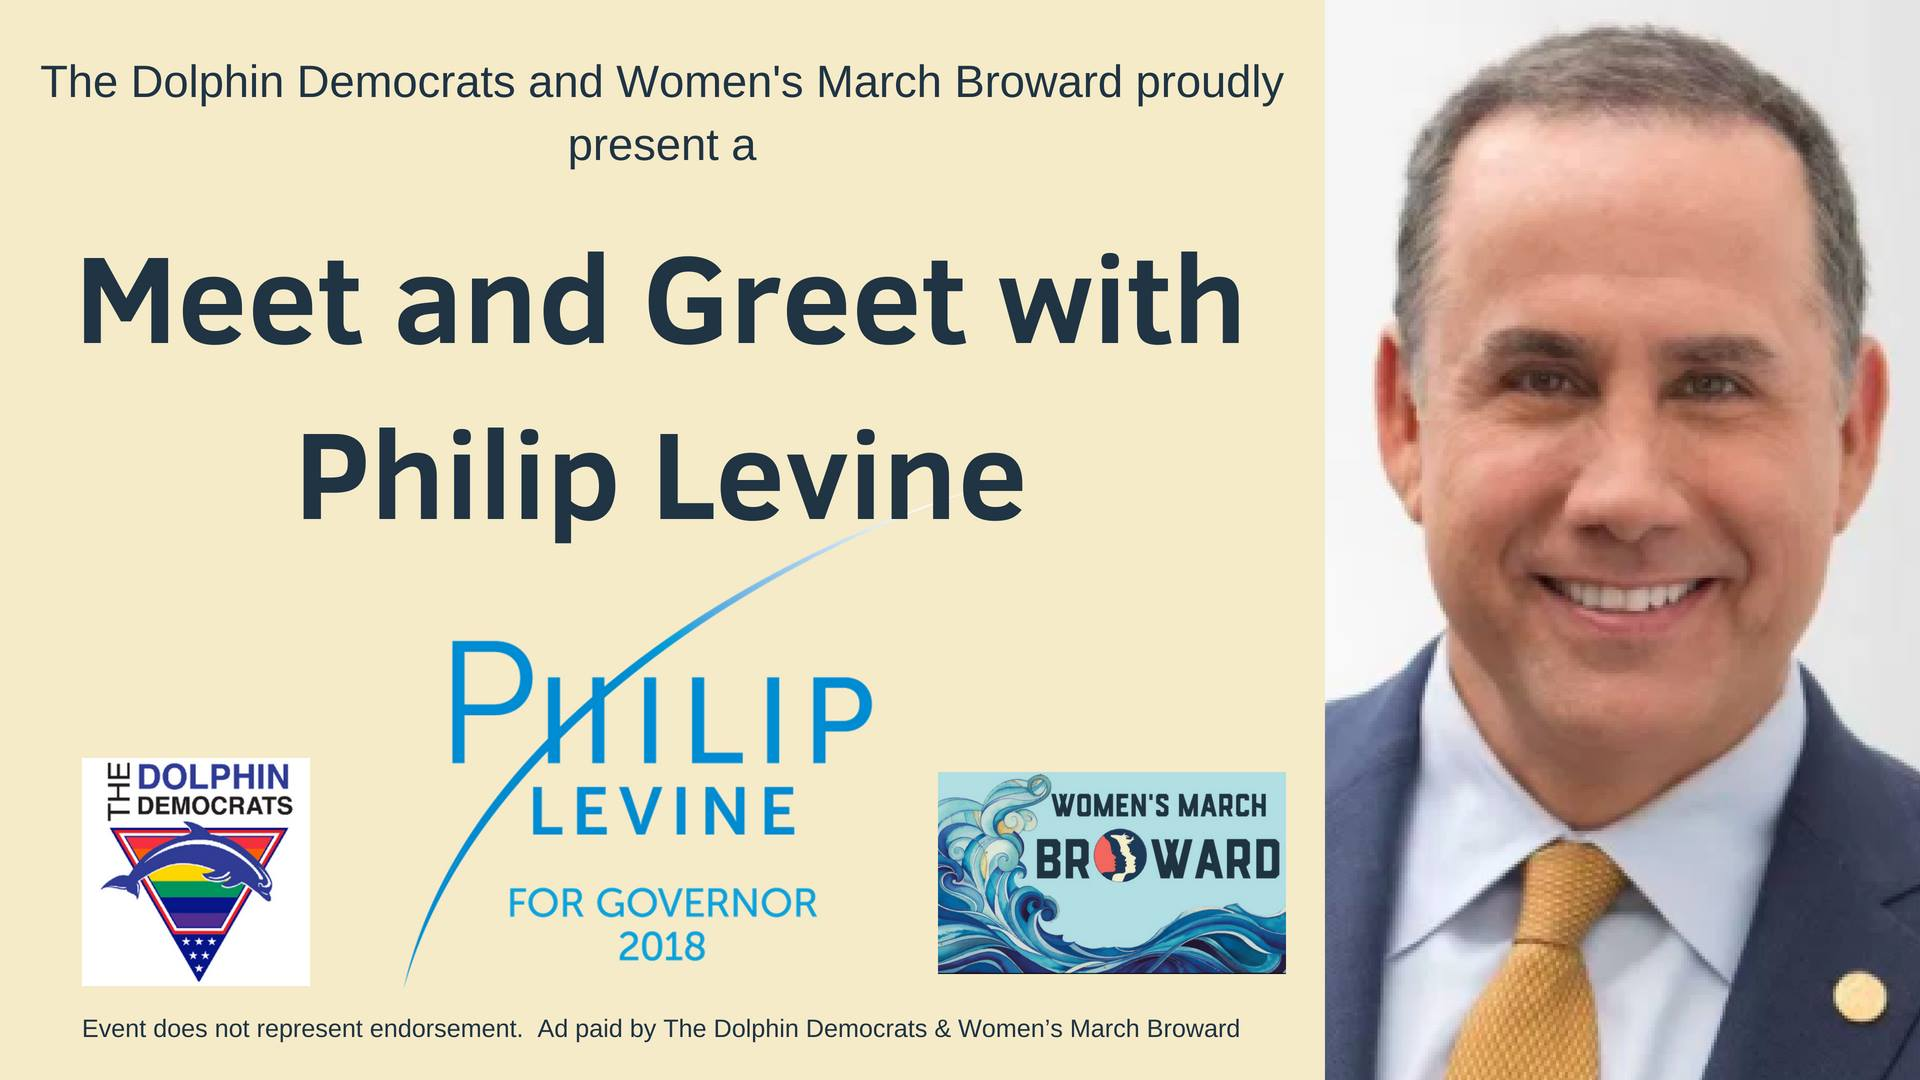 6-24-2018: Meet and Greet with Philip Levine - The Dolphin Democrats & Women's March - Broward Chapterproudly present a Meet & Greet with Philip Levine for Governor. Come and take advantage of this unique opportunity to meet the candidate before the primary election.Sunday, June 24, 20185:30pm - 7:00pmChardees LoungeWilton ManorsThis event is paid for and organized by the Dolphin Democrats and the Women's March - Broward Chapter and does not represent endorsement of the candidate.